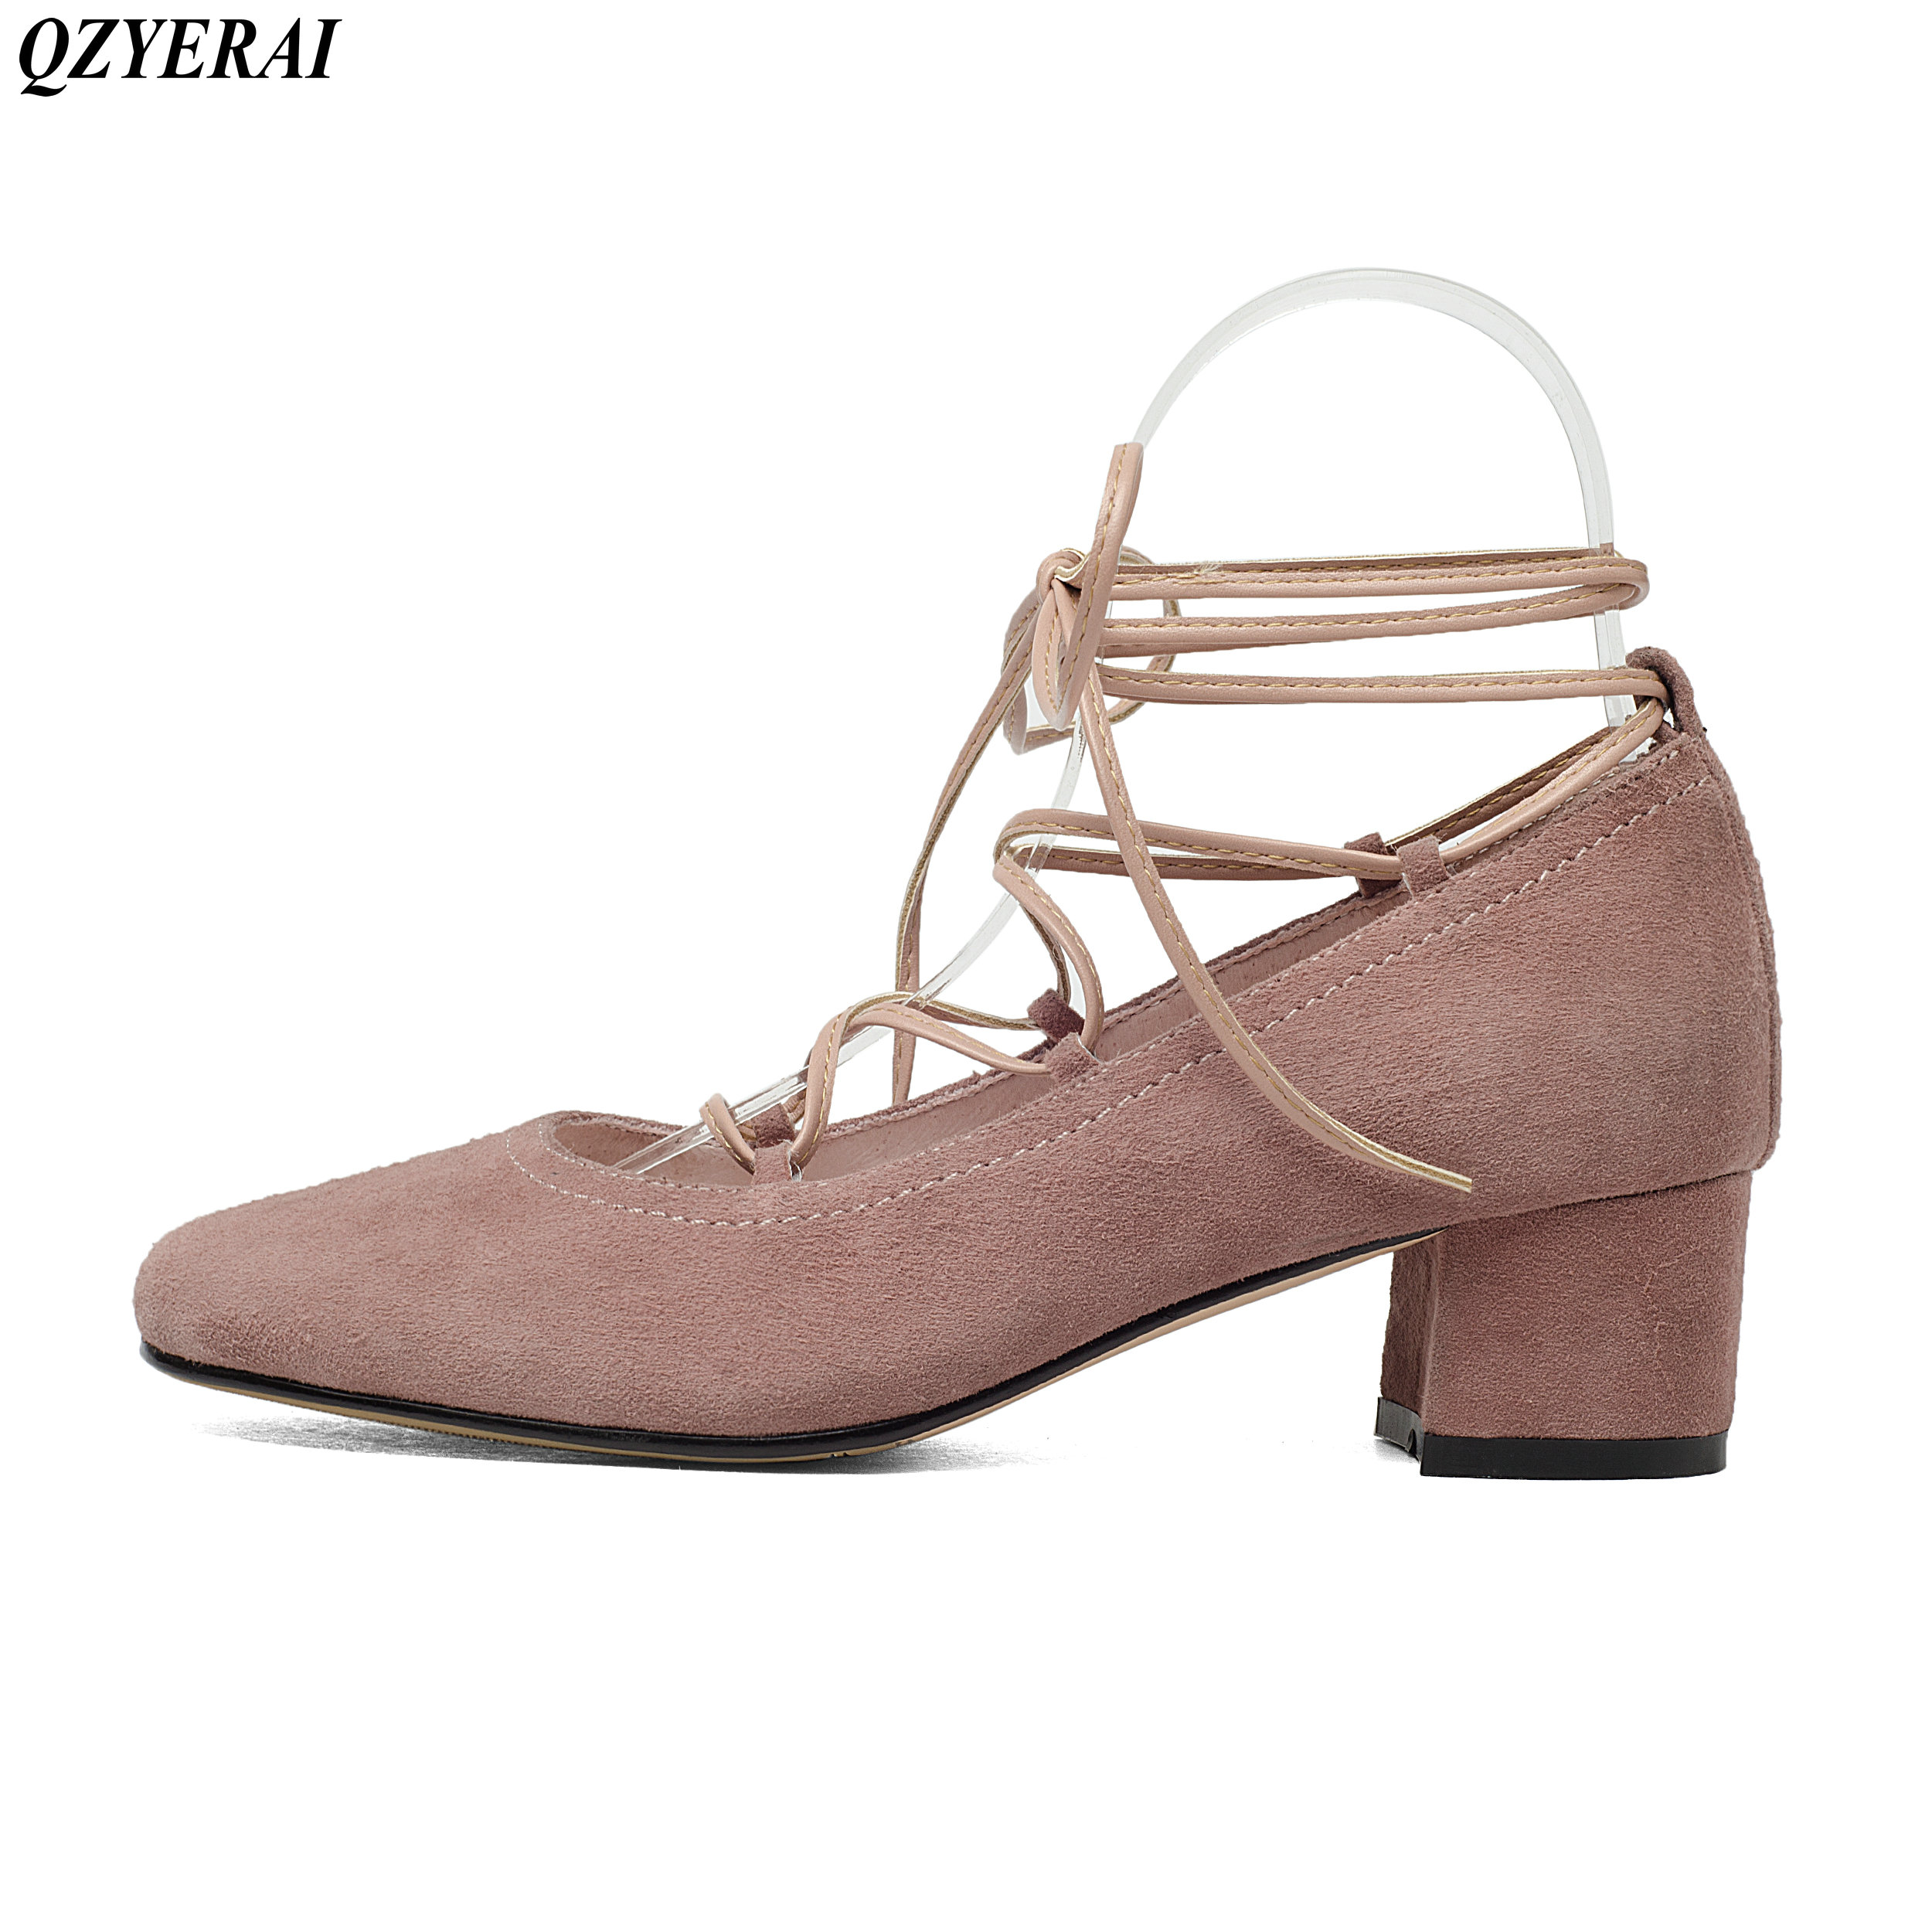 QZYERAI Fashionable lady of 2018 100% sheepskin high heels spring summer sexy women's shoes European fashion trend size 34-43 чехол deppa air case для sony xperia z3 розовый 83140